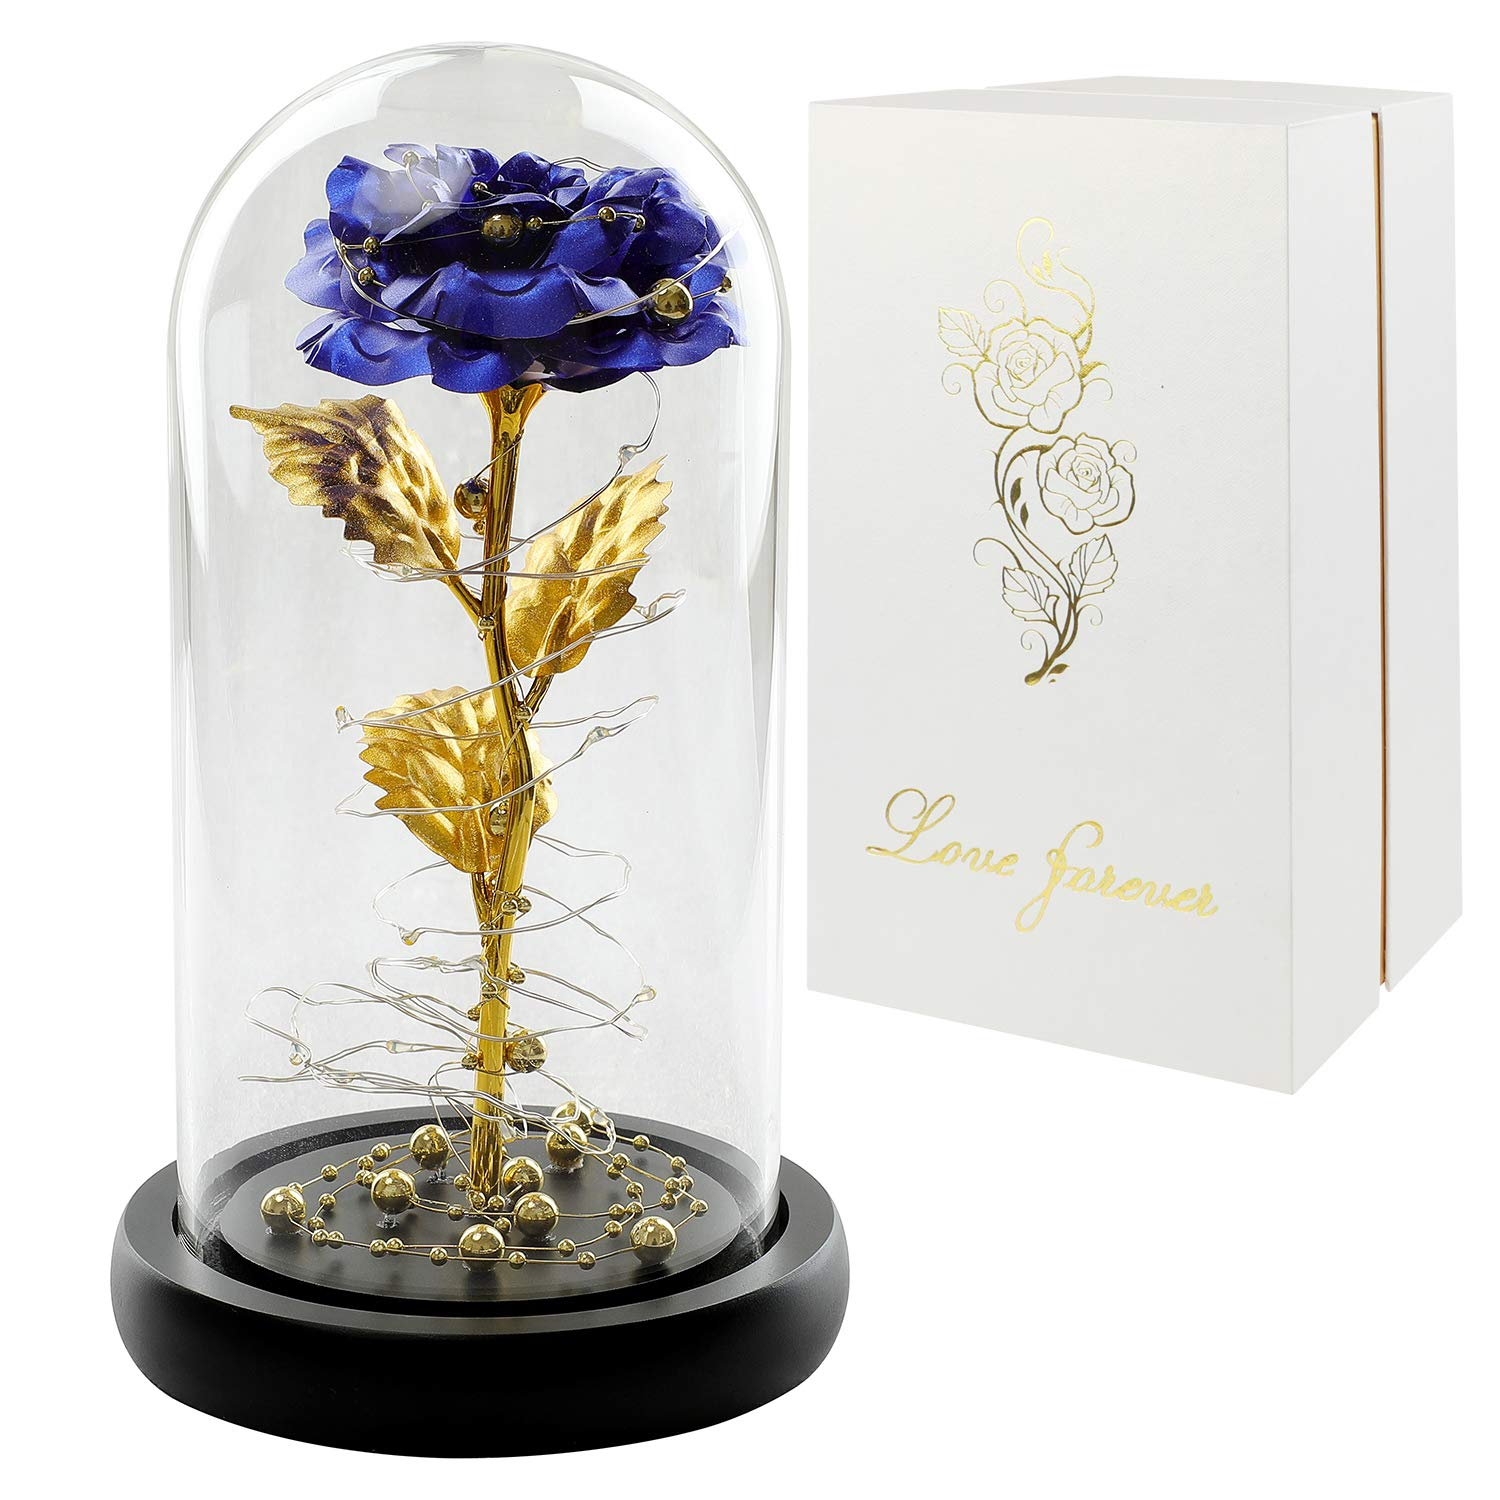 Women, Glass Rose Dome, Blue LED Rose Flower in Glass Dome,Artificial Flowers Last Forever,Preserved Rose,Forever Rose Gift Mother, Valentine's Day,Wedding, Anniversary,Girlfriend